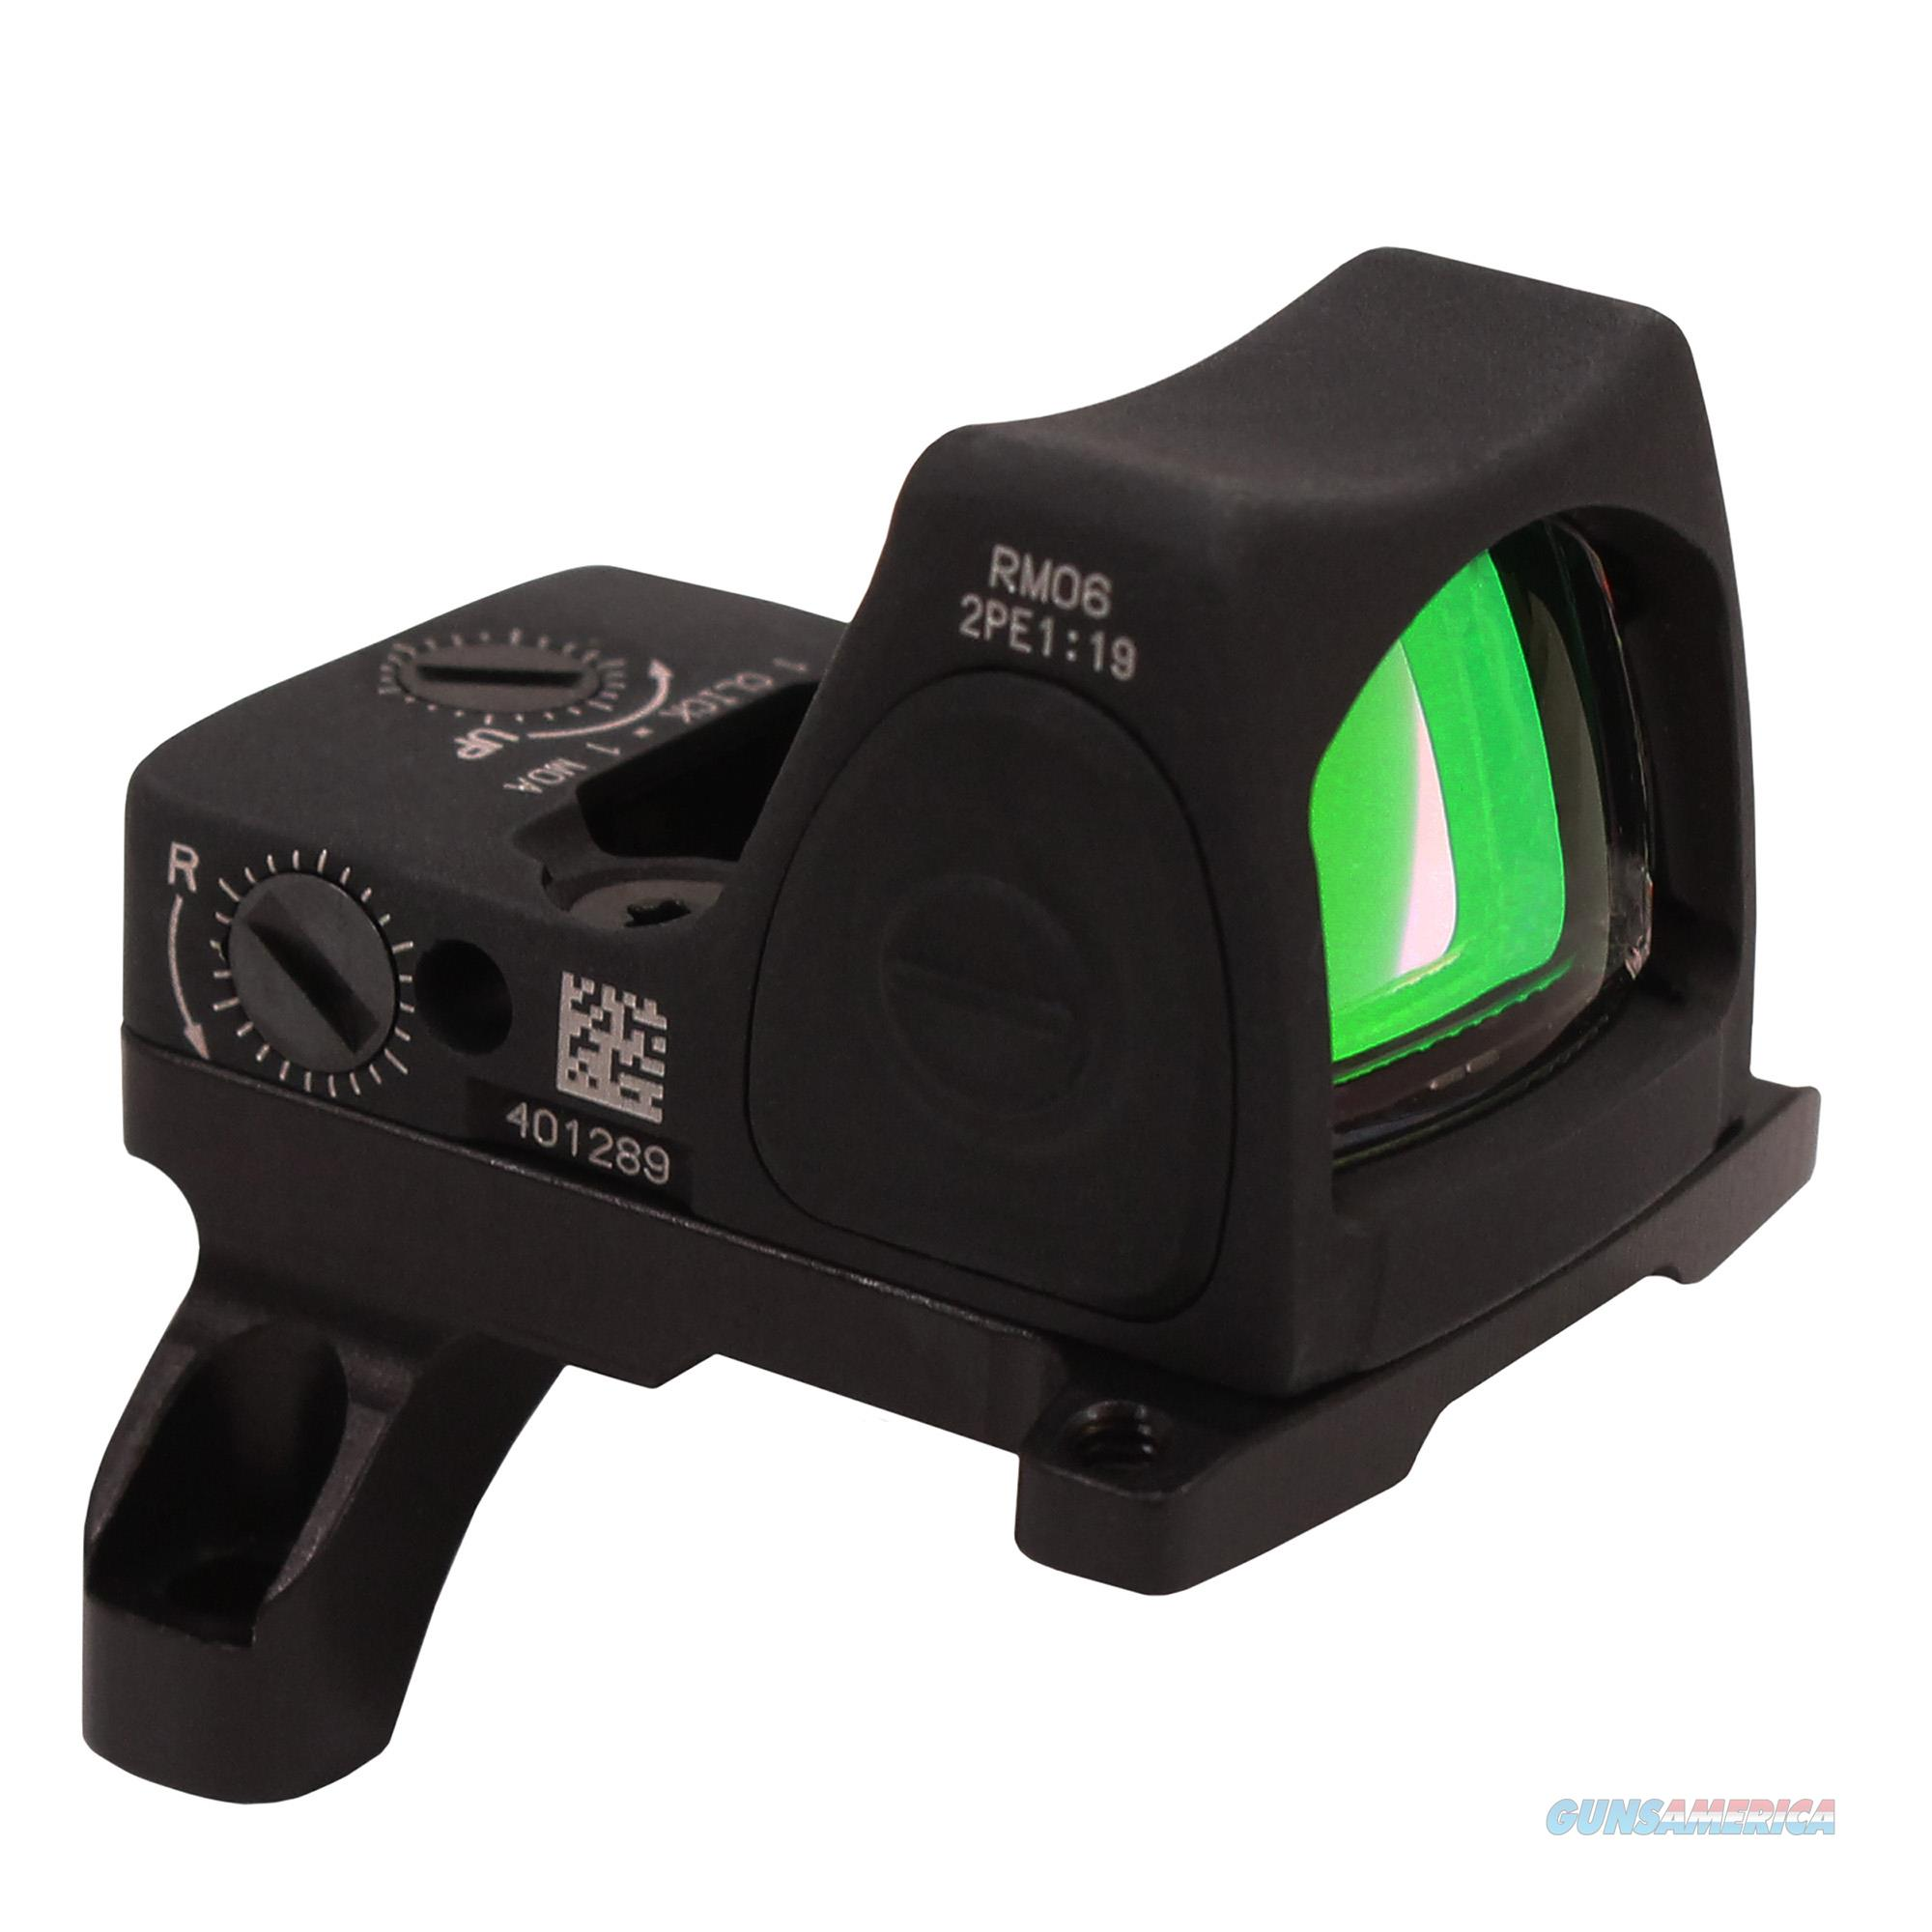 Trijicon Rmr Type 2 Adjustable Led Sight RM06C700676  Non-Guns > Scopes/Mounts/Rings & Optics > Mounts > Other